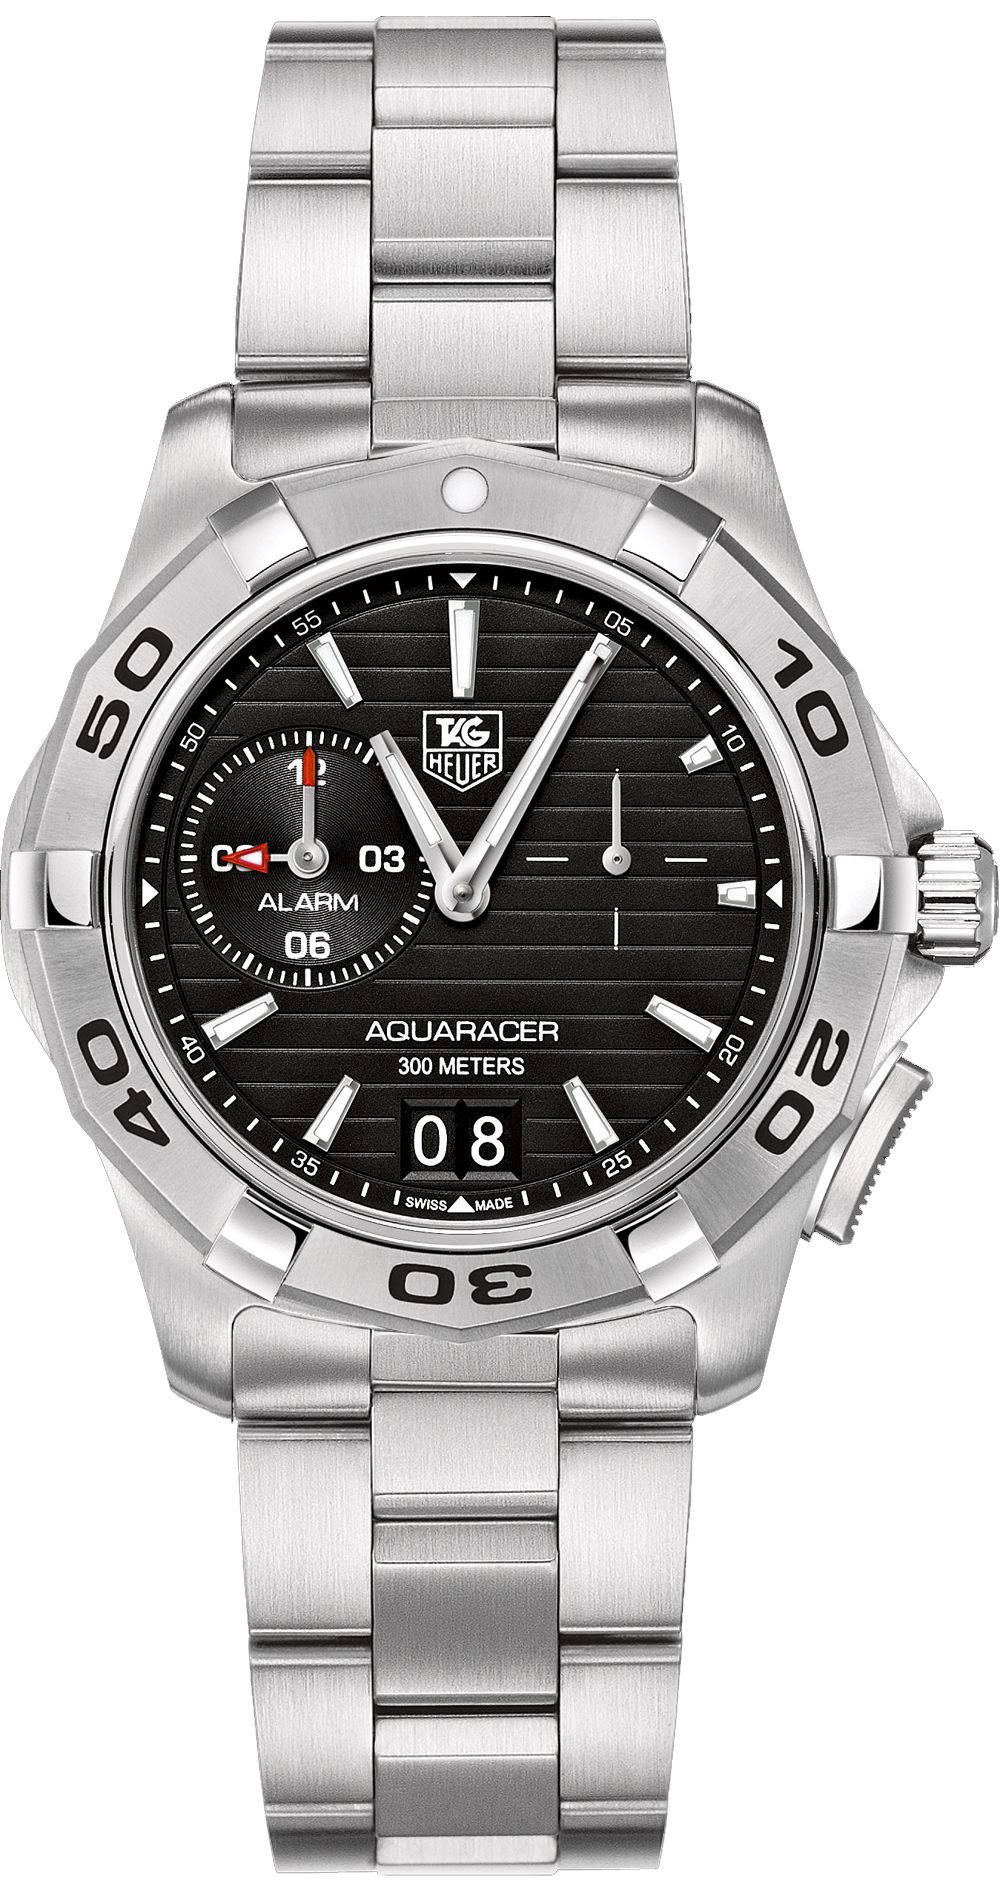 TAG Heuer Aquaracer 300m Automatic Replica Watches For Sale